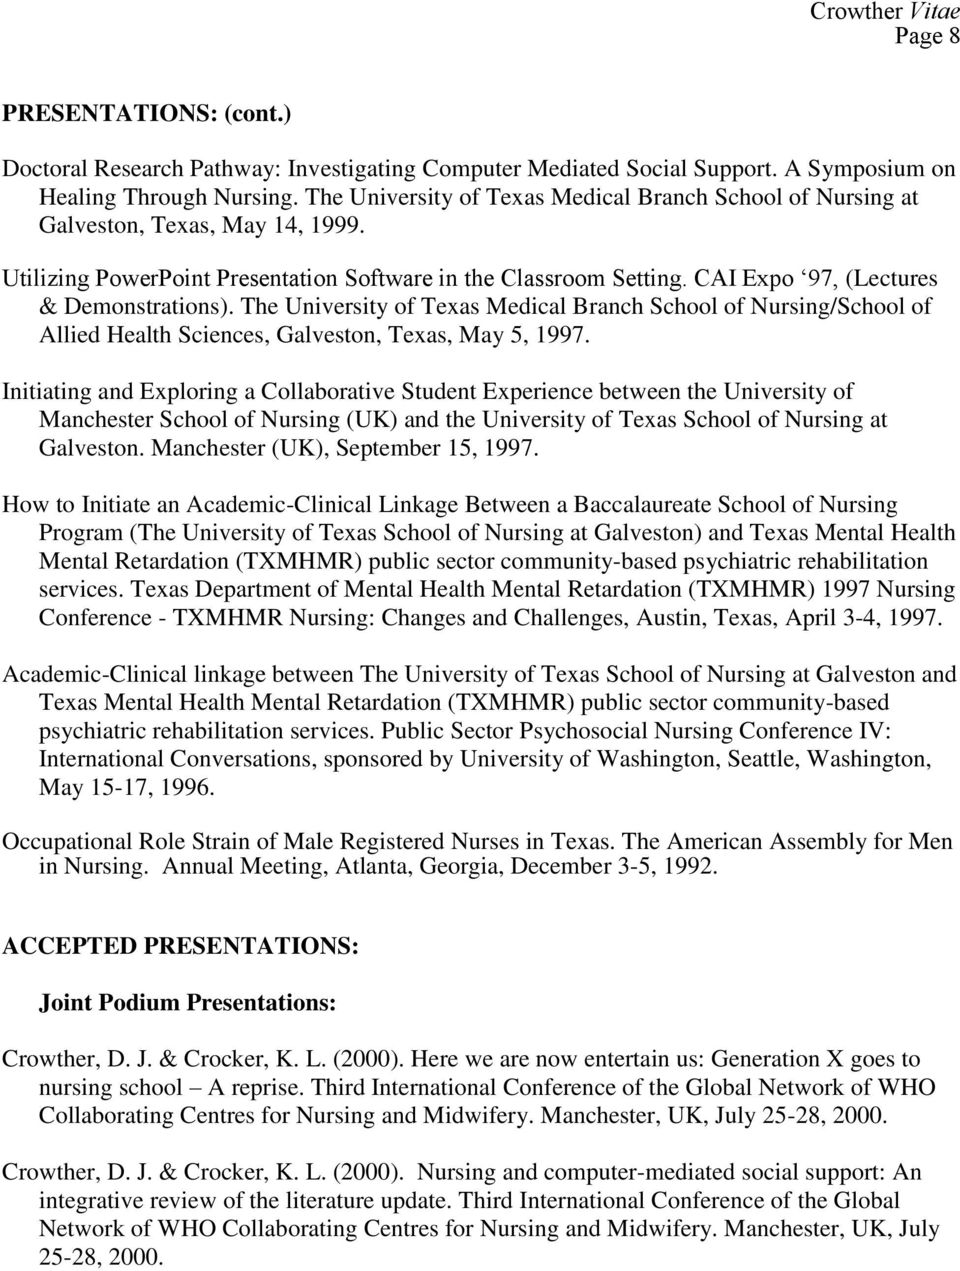 CAI Expo 97, (Lectures & Demonstrations). The University of Texas Medical Branch School of Nursing/School of Allied Health Sciences, Galveston, Texas, May 5, 1997.